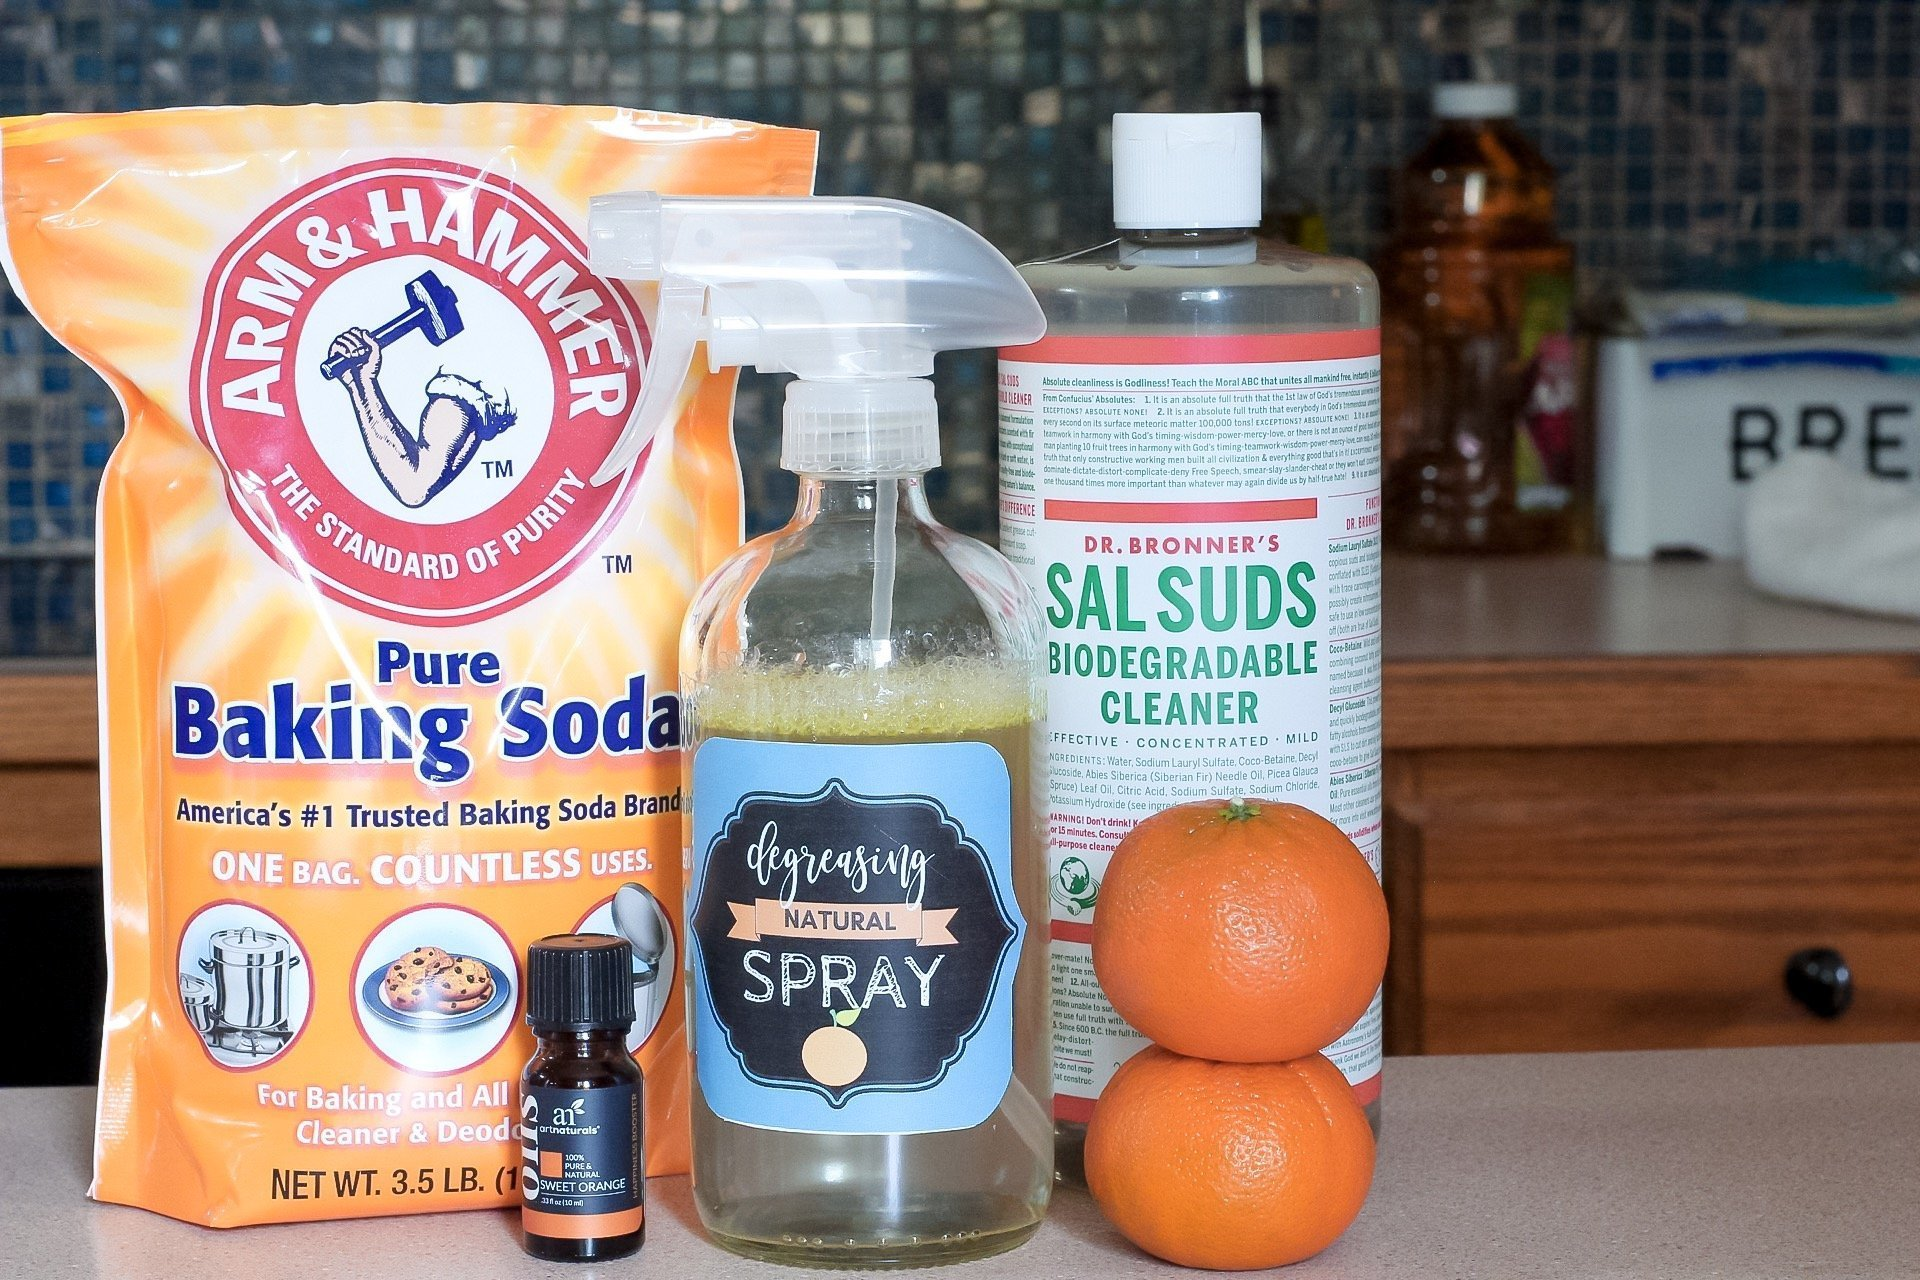 Kitchen And Stove Degreaser Ingredients: Baking soda, Sal's Suds, sweet orange essnetial oil, and glass bottle of kitchen greaser